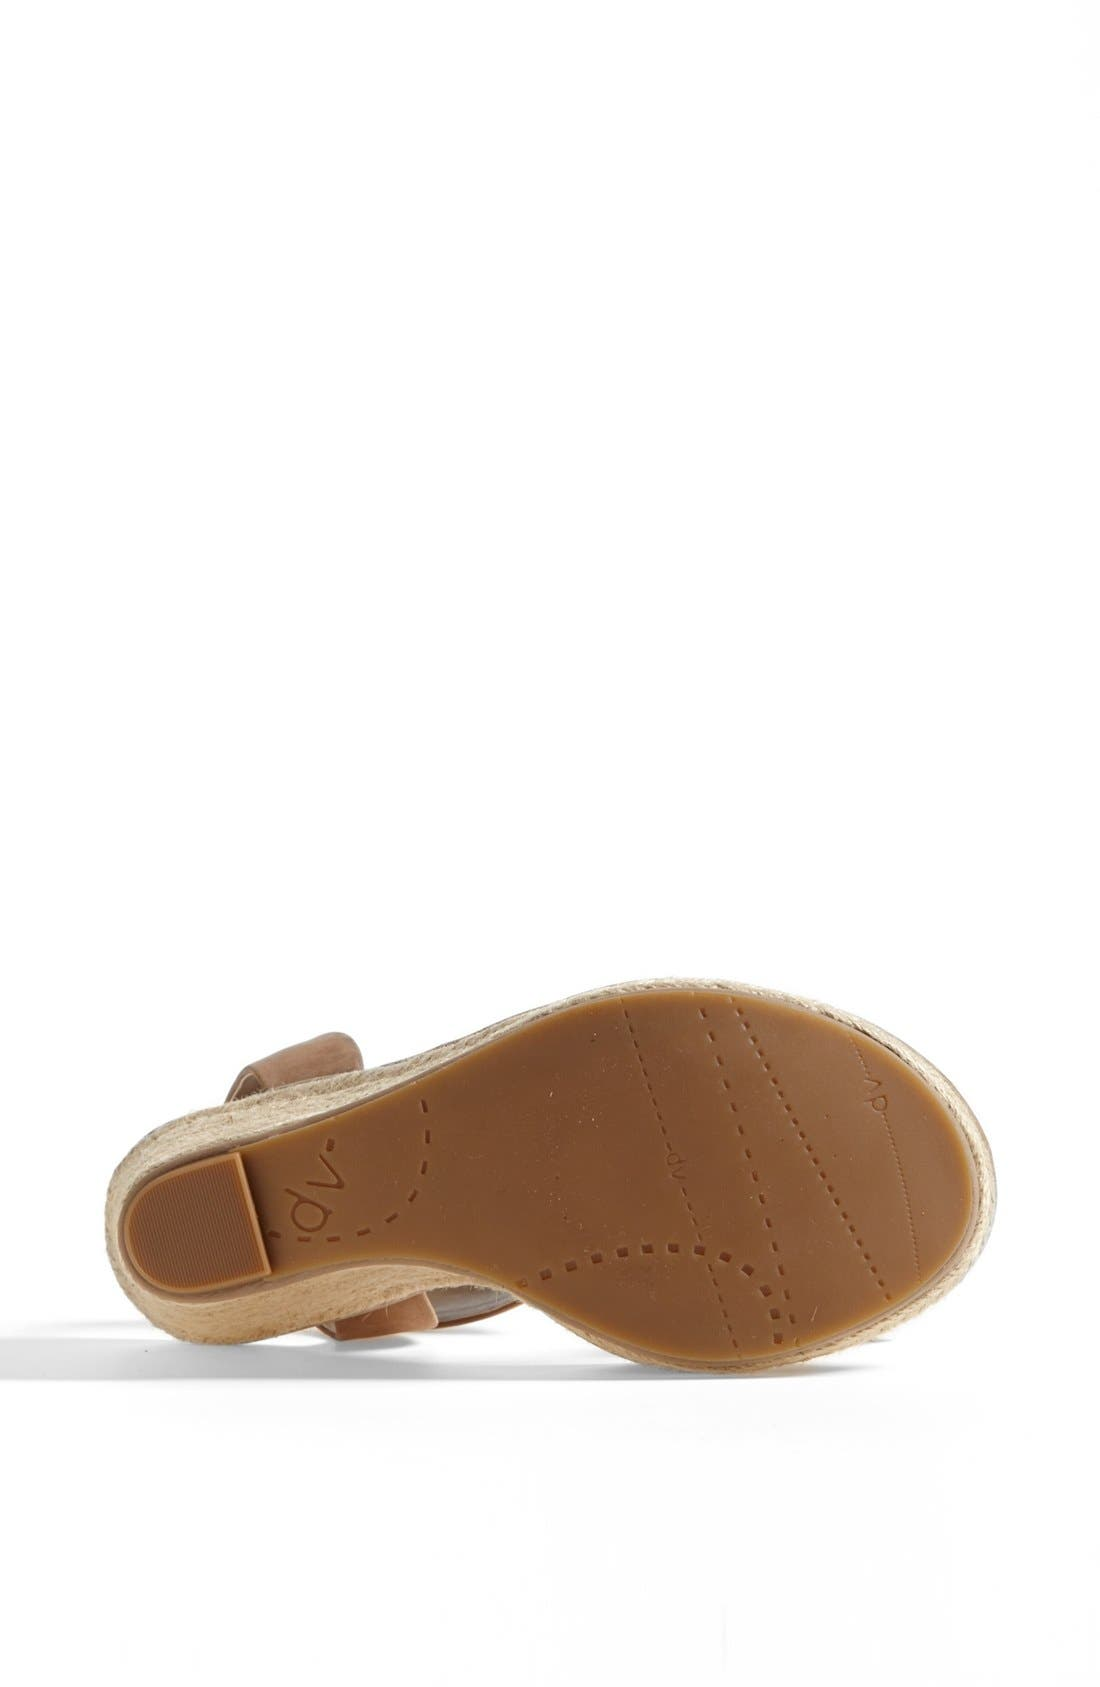 DV by Dolce Vita 'Tonya' Sandal,                             Alternate thumbnail 4, color,                             Taupe